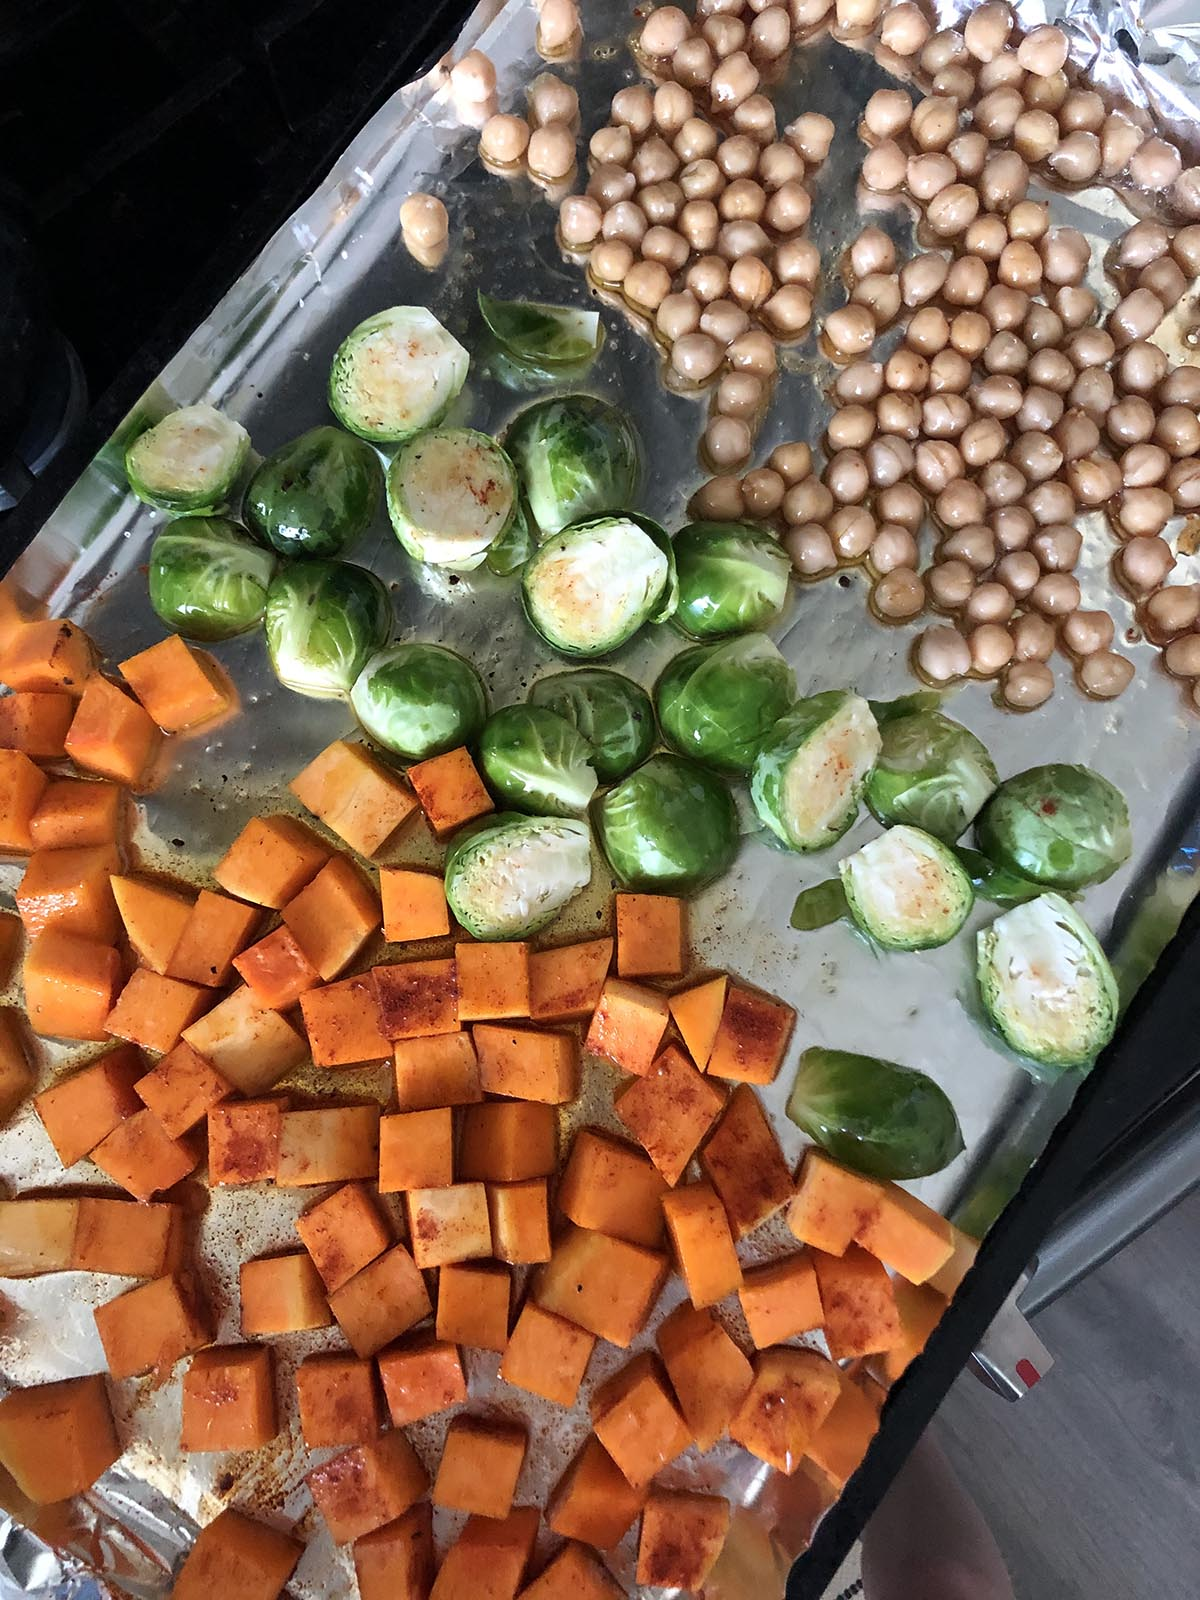 brussels sprouts chickpeas and butternut squash on a sheet pan